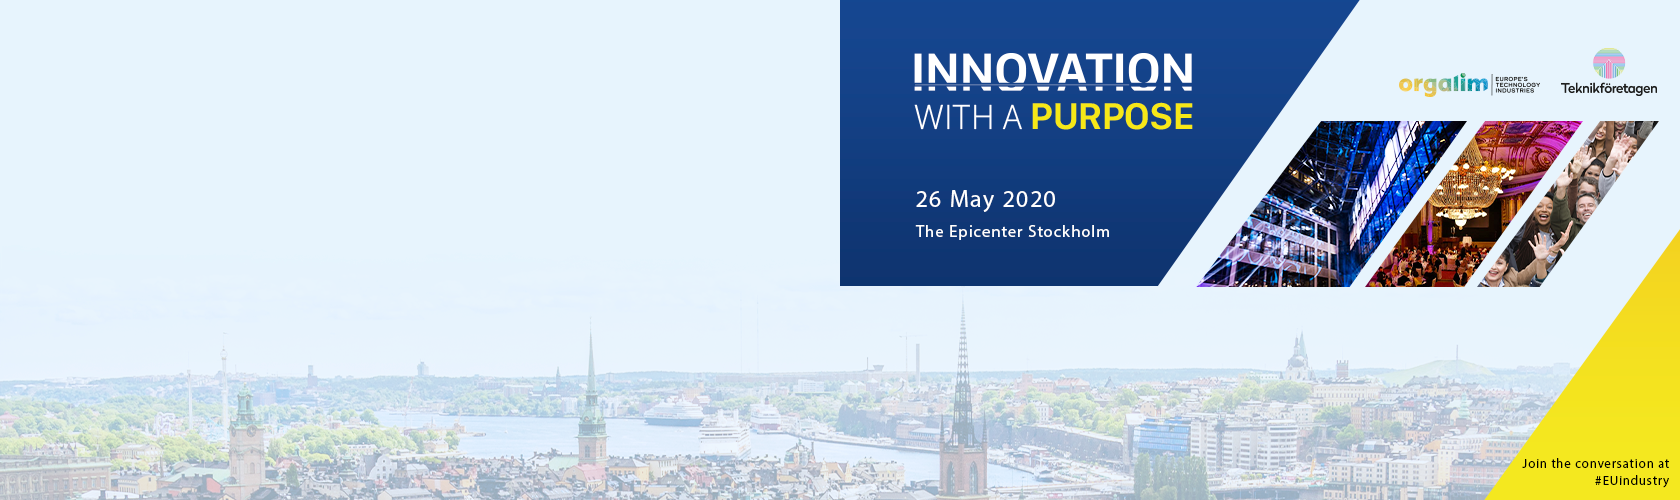 Tech industries head to Stockholm to talk 'Innovation with a purpose'